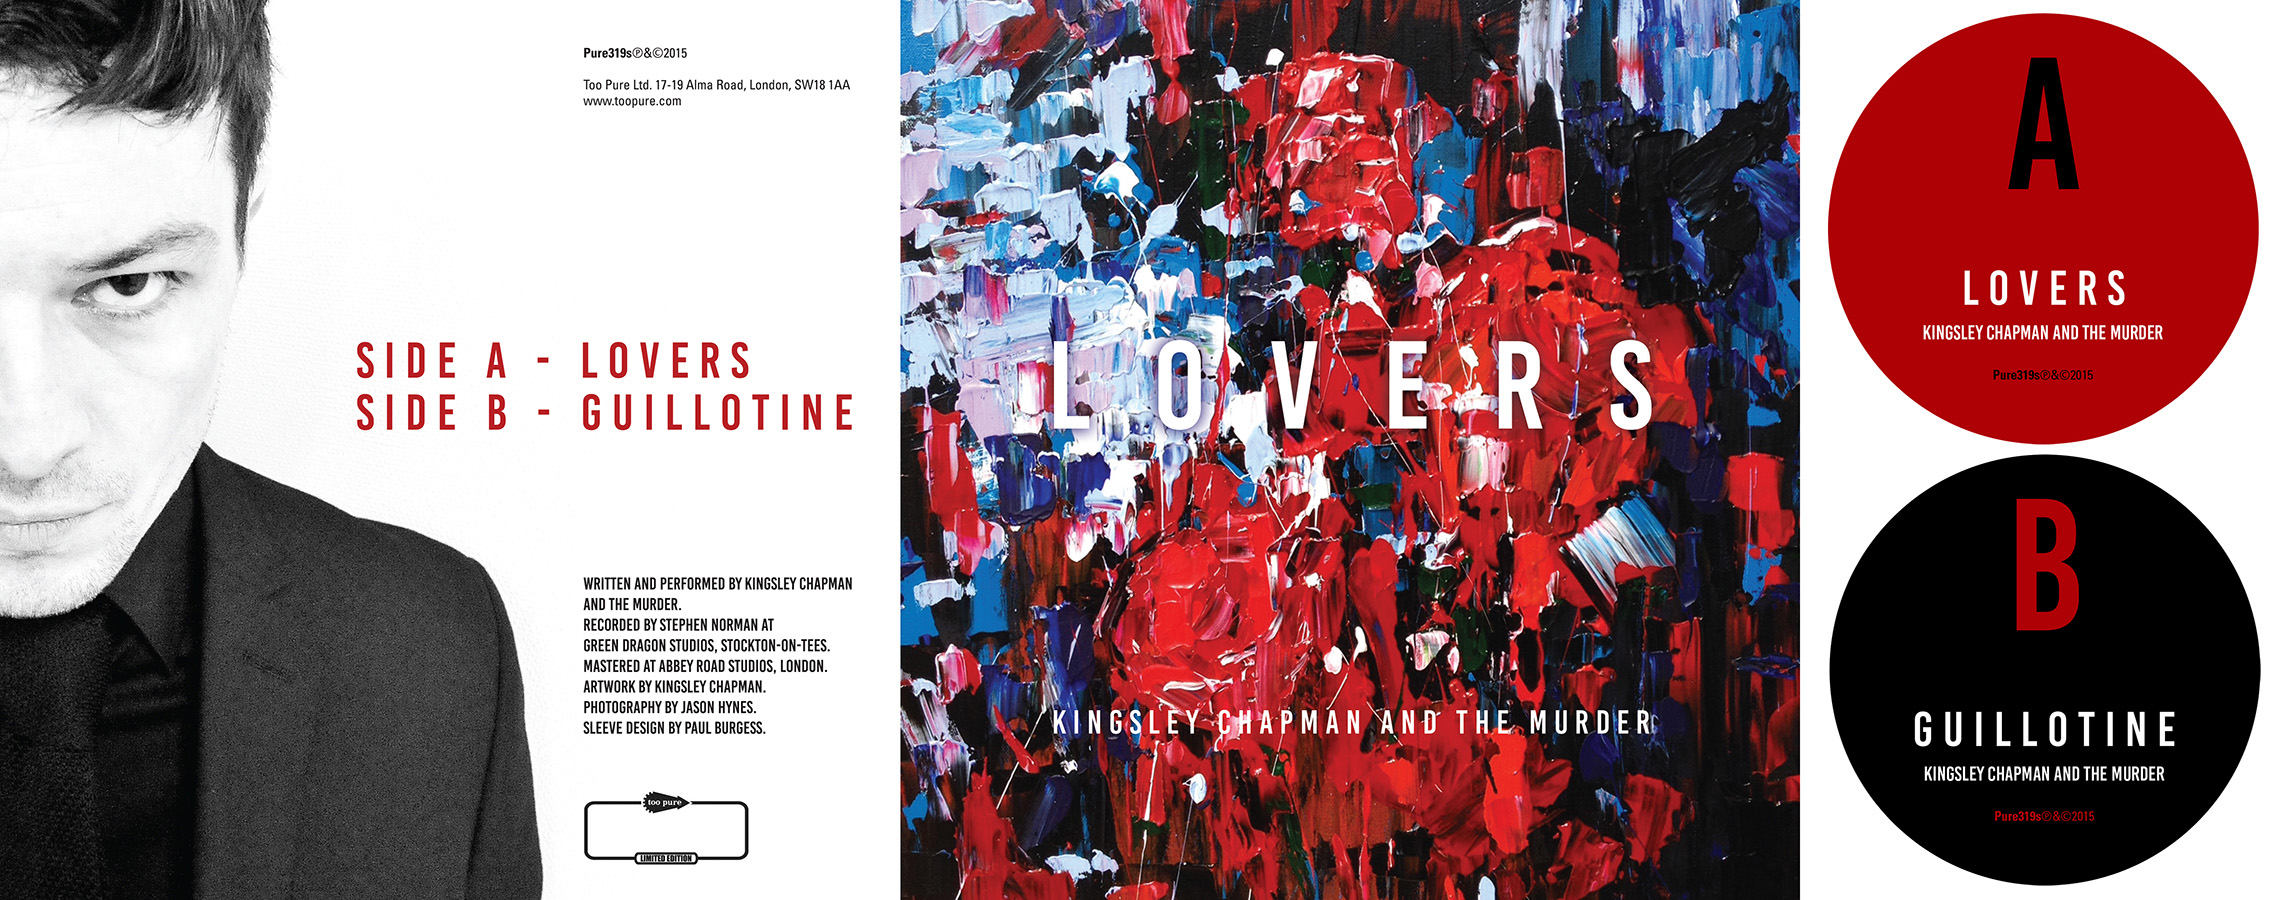 Sleeve/label artwork for 'Lovers/Guillotine' by Kingsley Chapman and the Murder.